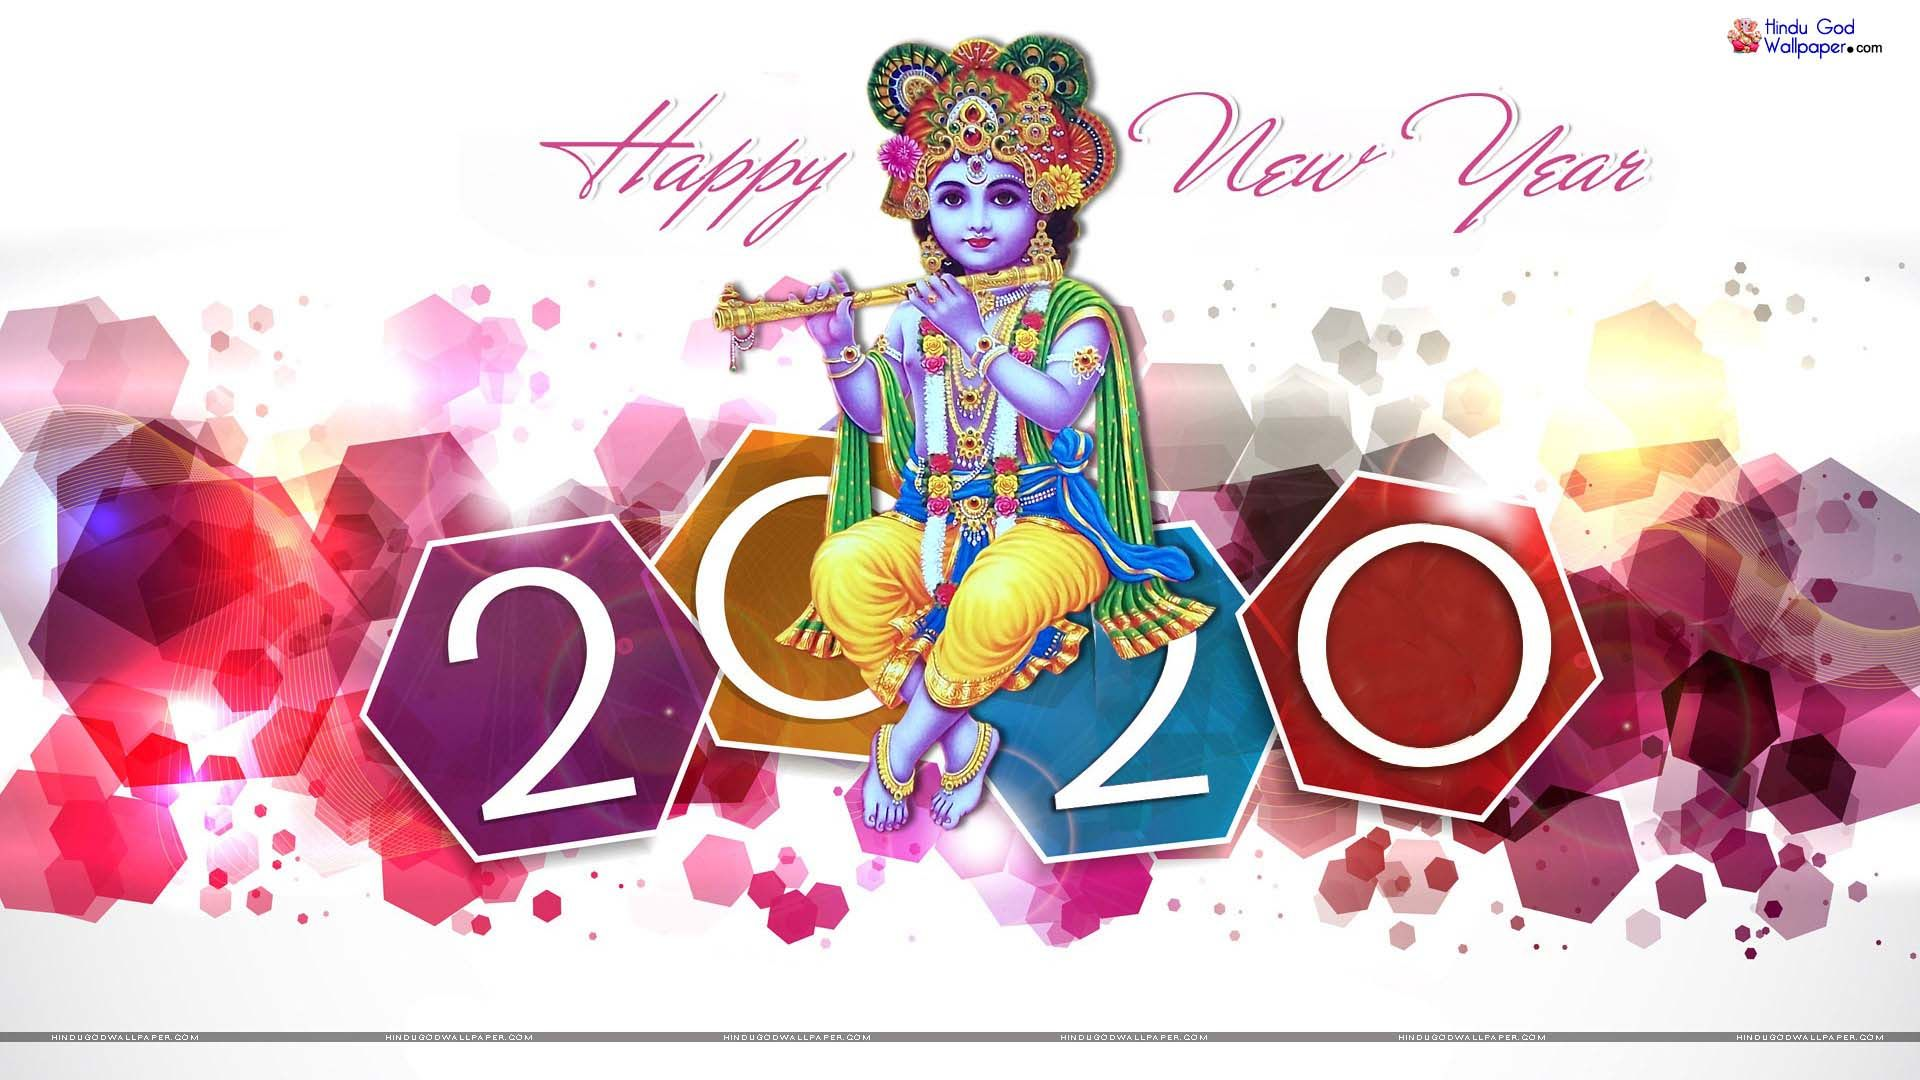 2020 New Year hd wallpaper download